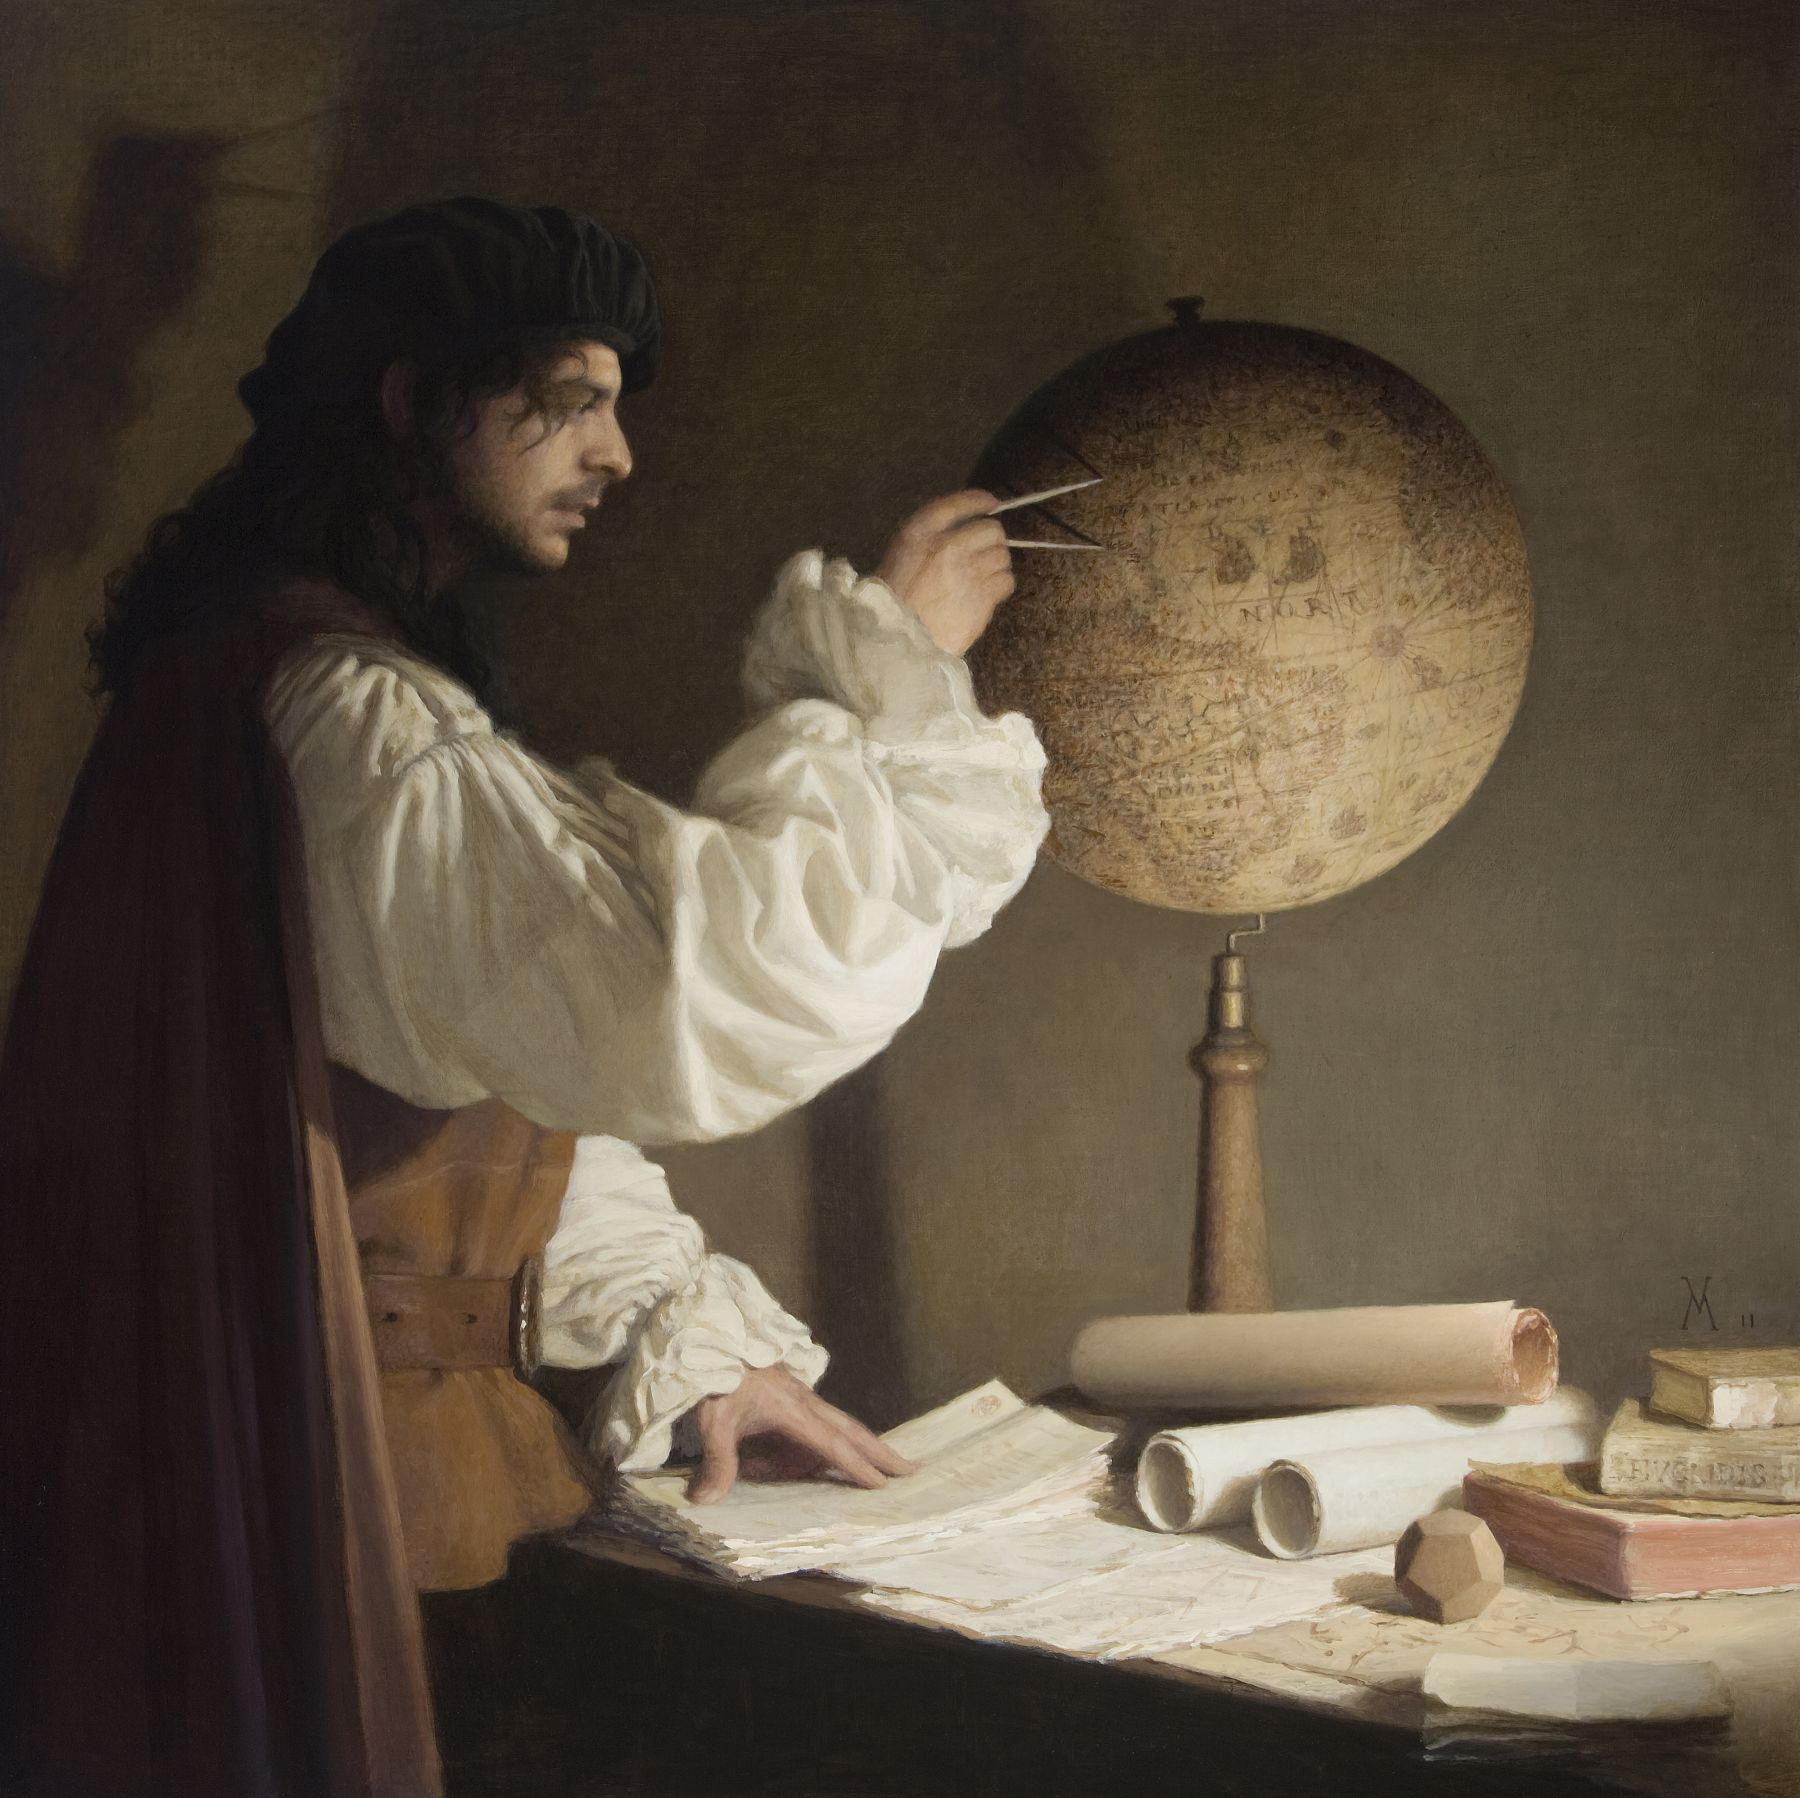 guillermo munoz vera, The Geometer (SOLD), 2011, oil on canvas on panel, 39 3/8 x 39 3/8 inches